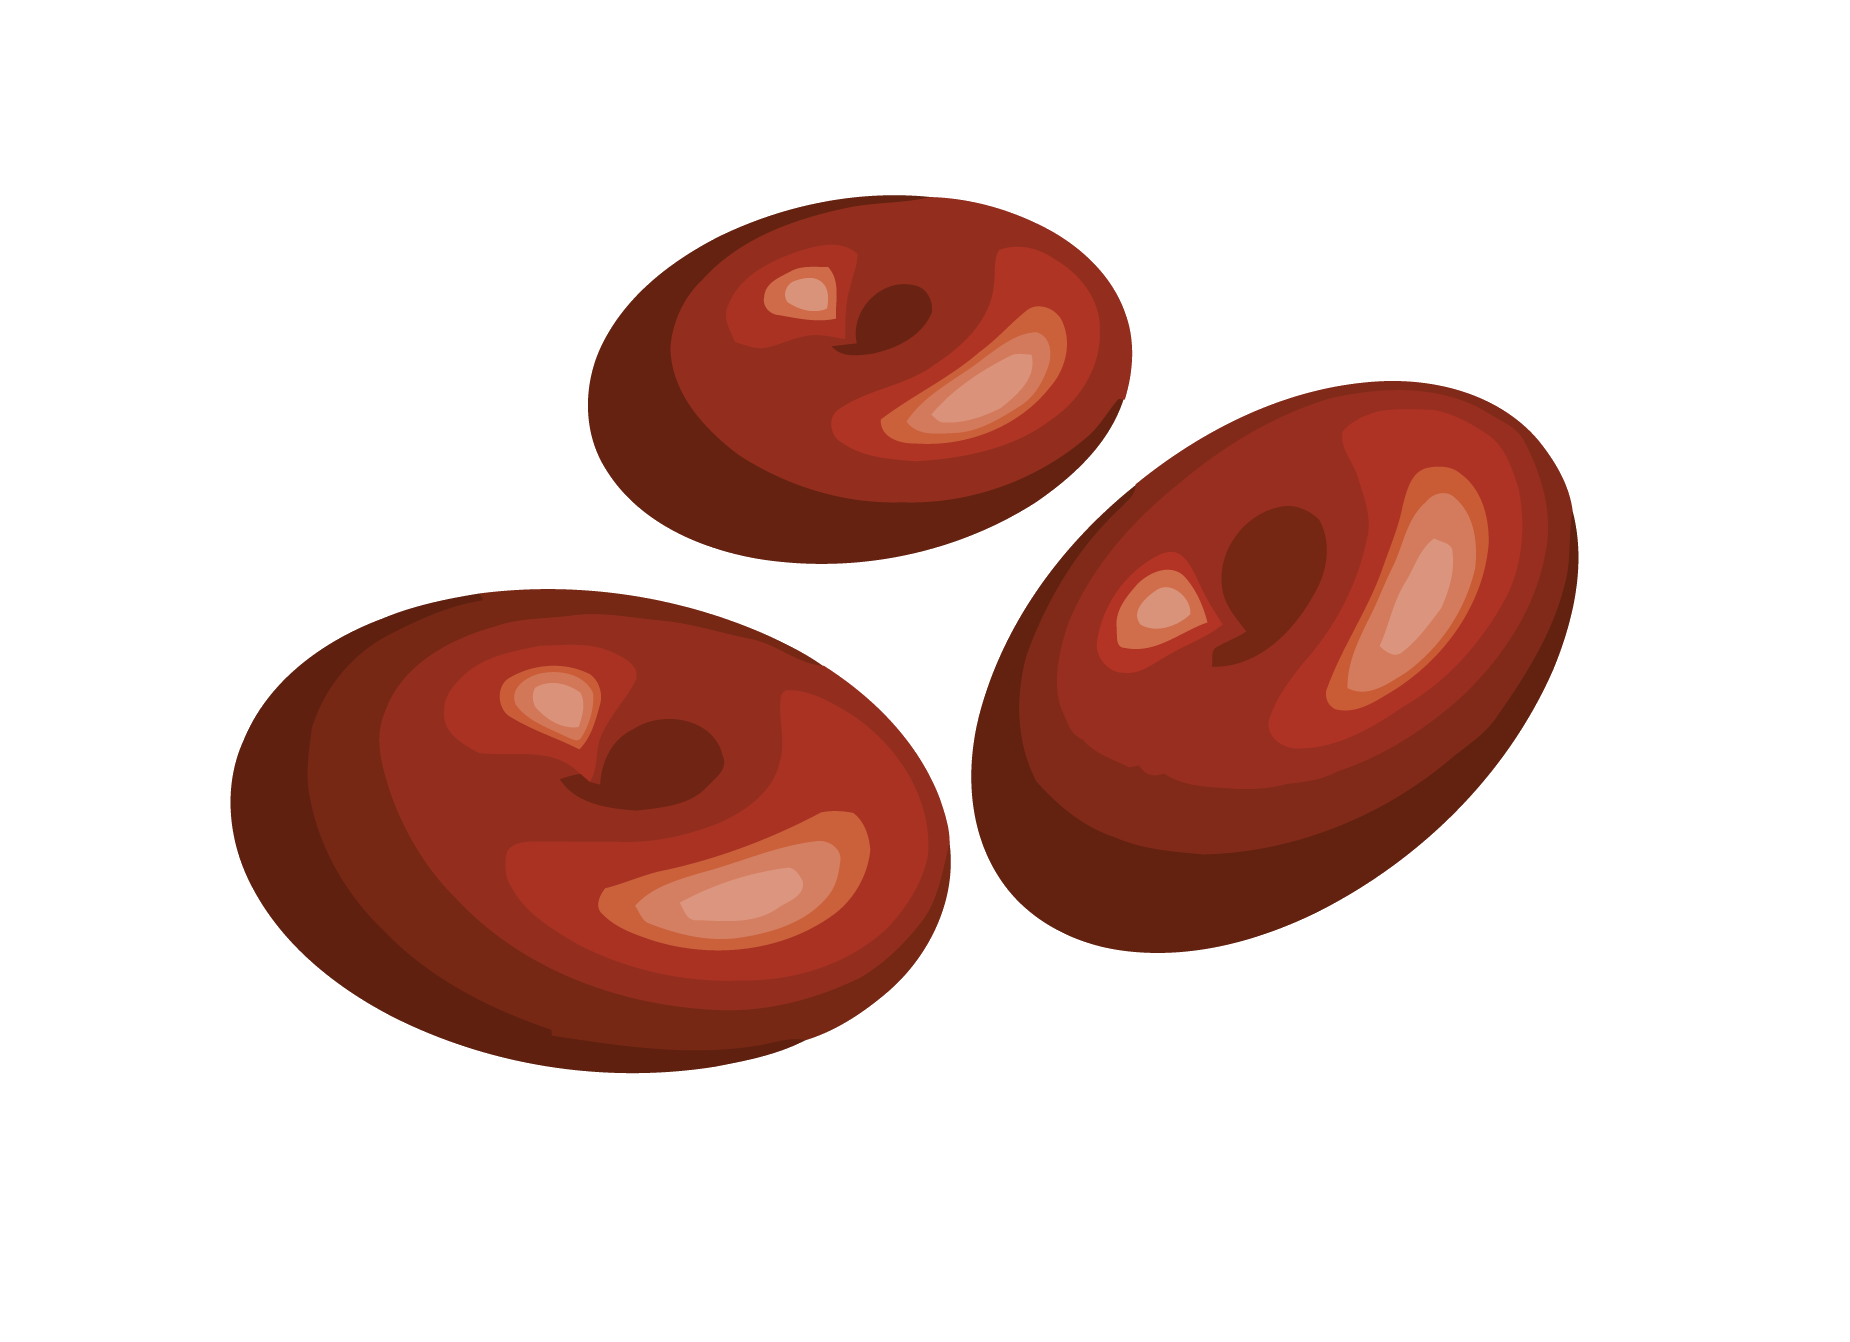 Red blood cells png. Cell type human body